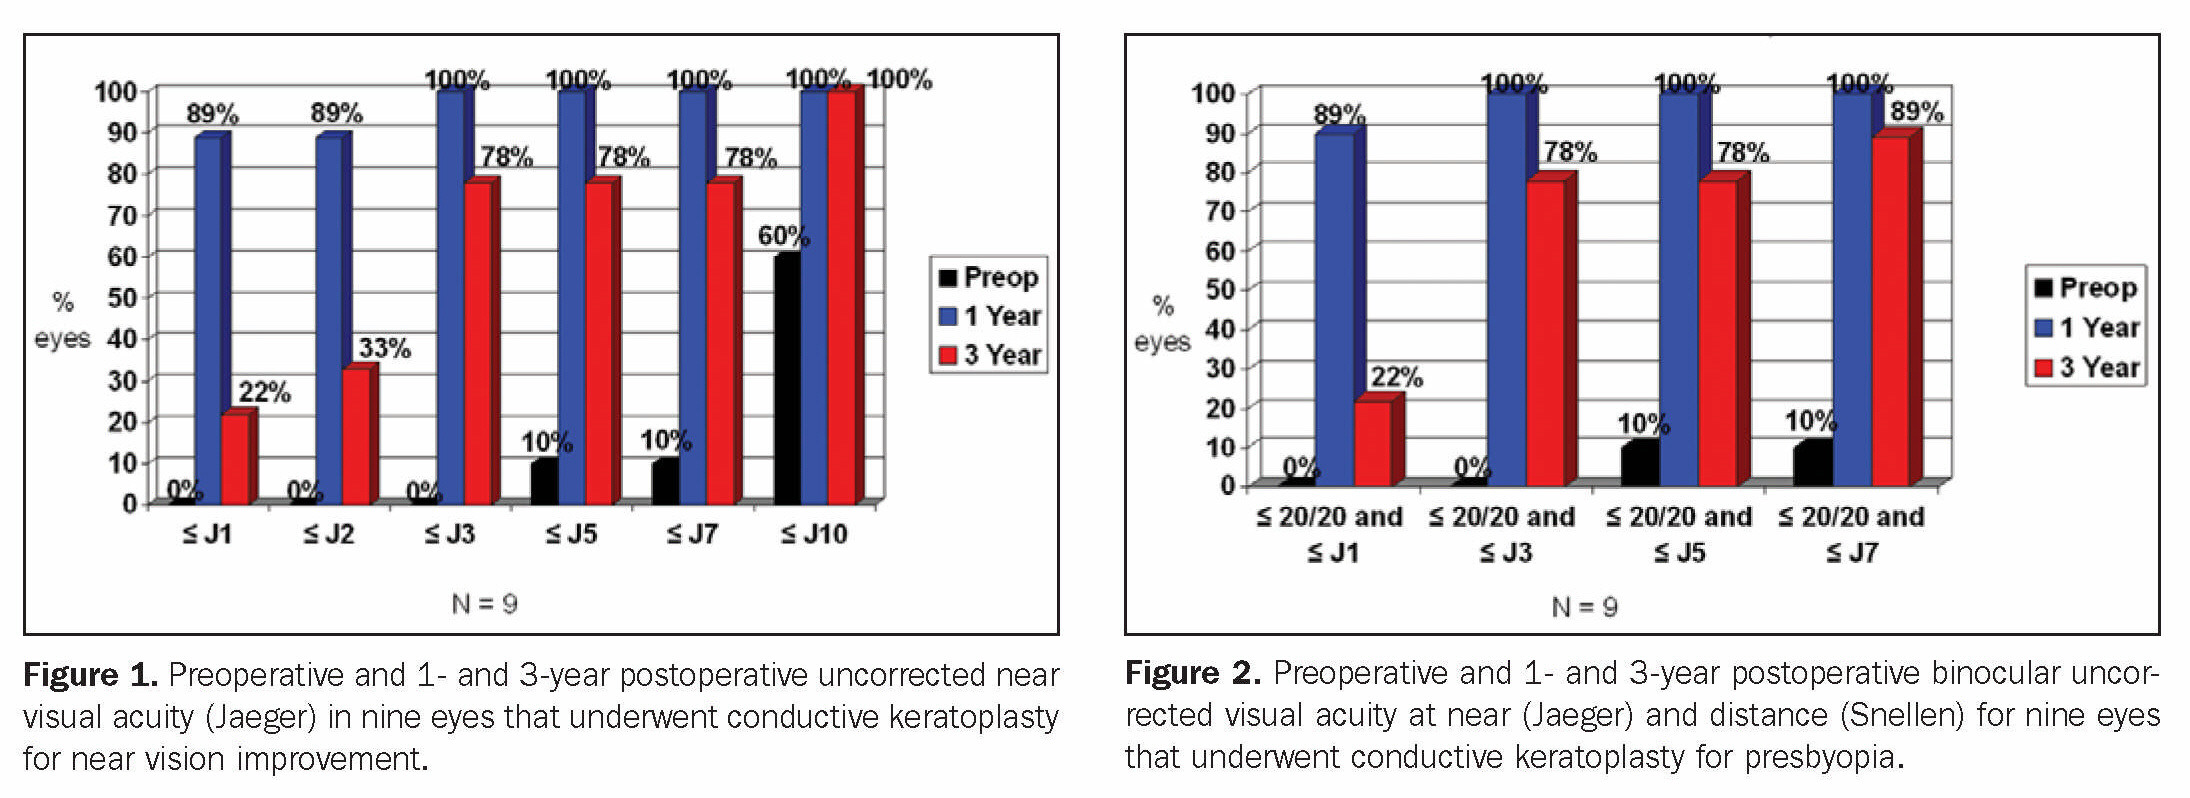 Figure 1. Preoperative and 1- and 3-year postoperative uncorrected near visual acuity (Jaeger) in nine eyes that underwent conductive keratoplasty for near vision improvement.Figure 2. Preoperative and 1- and 3-year postoperative binocular uncorrected visual acuity at near (Jaeger) and distance (Snellen) for nine eyes that underwent conductive keratoplasty for presbyopia.